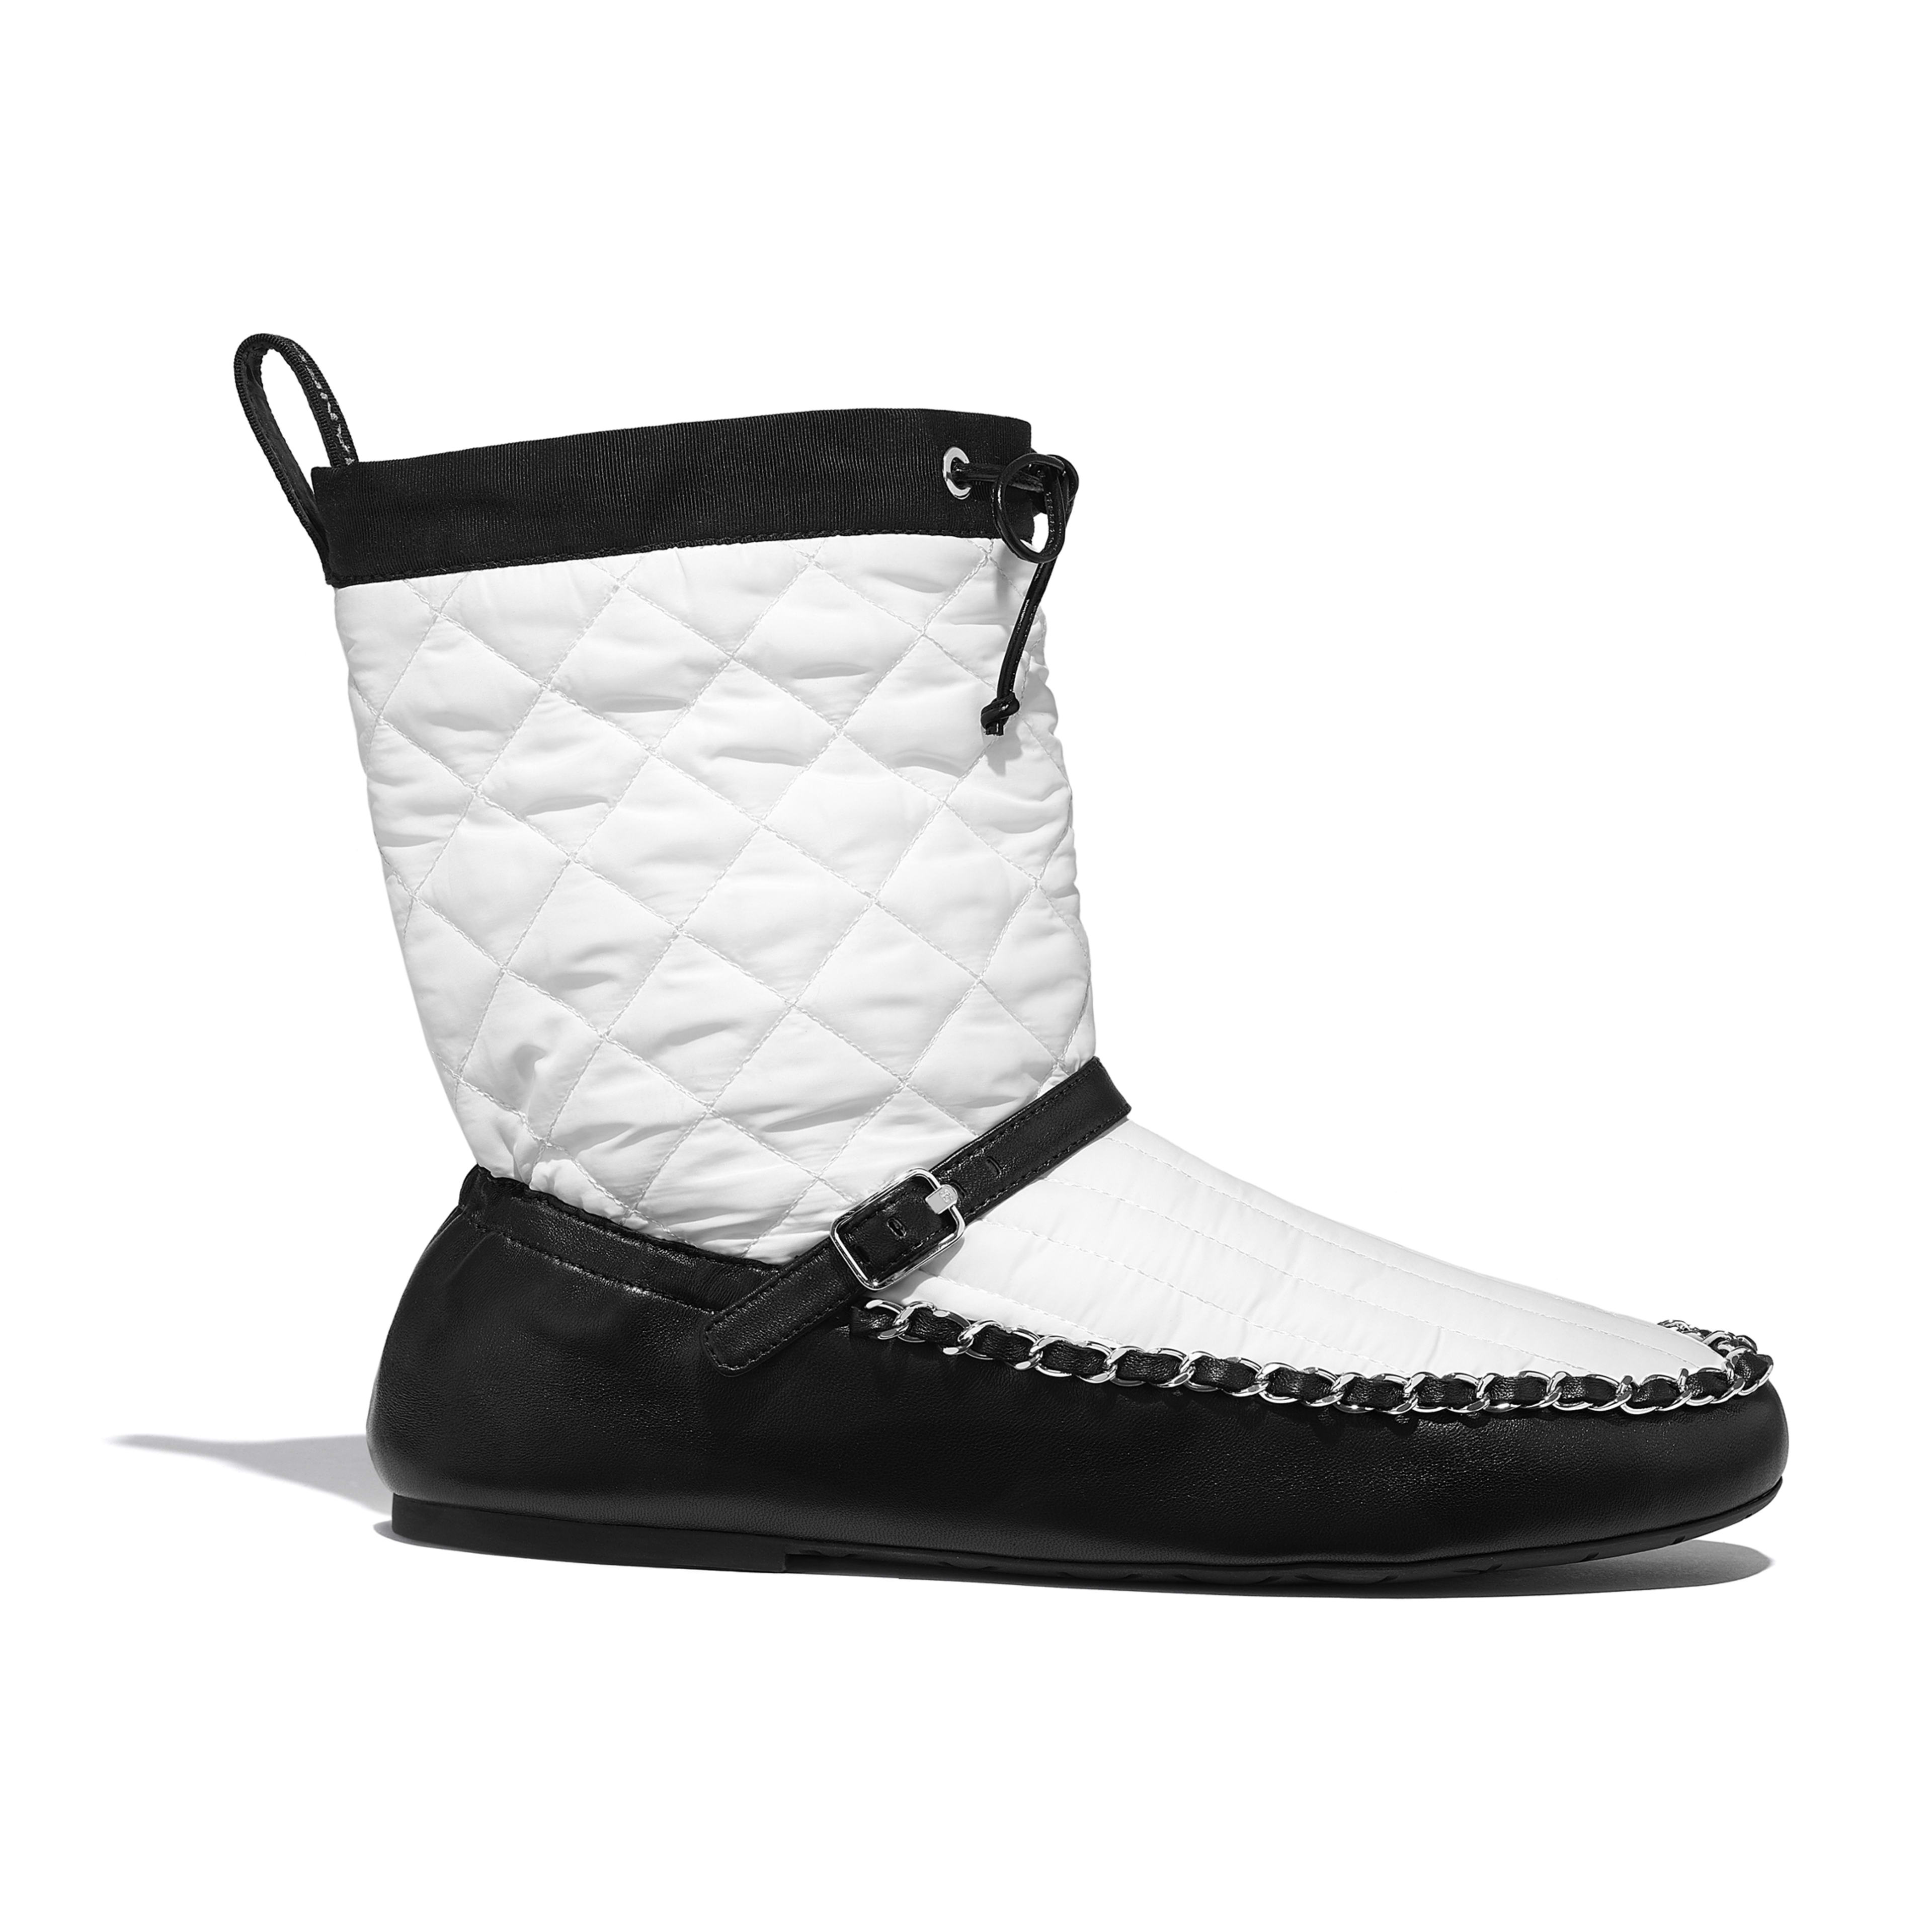 Ankle Boots - White & Black - Fabric & Lambskin - Default view - see full sized version